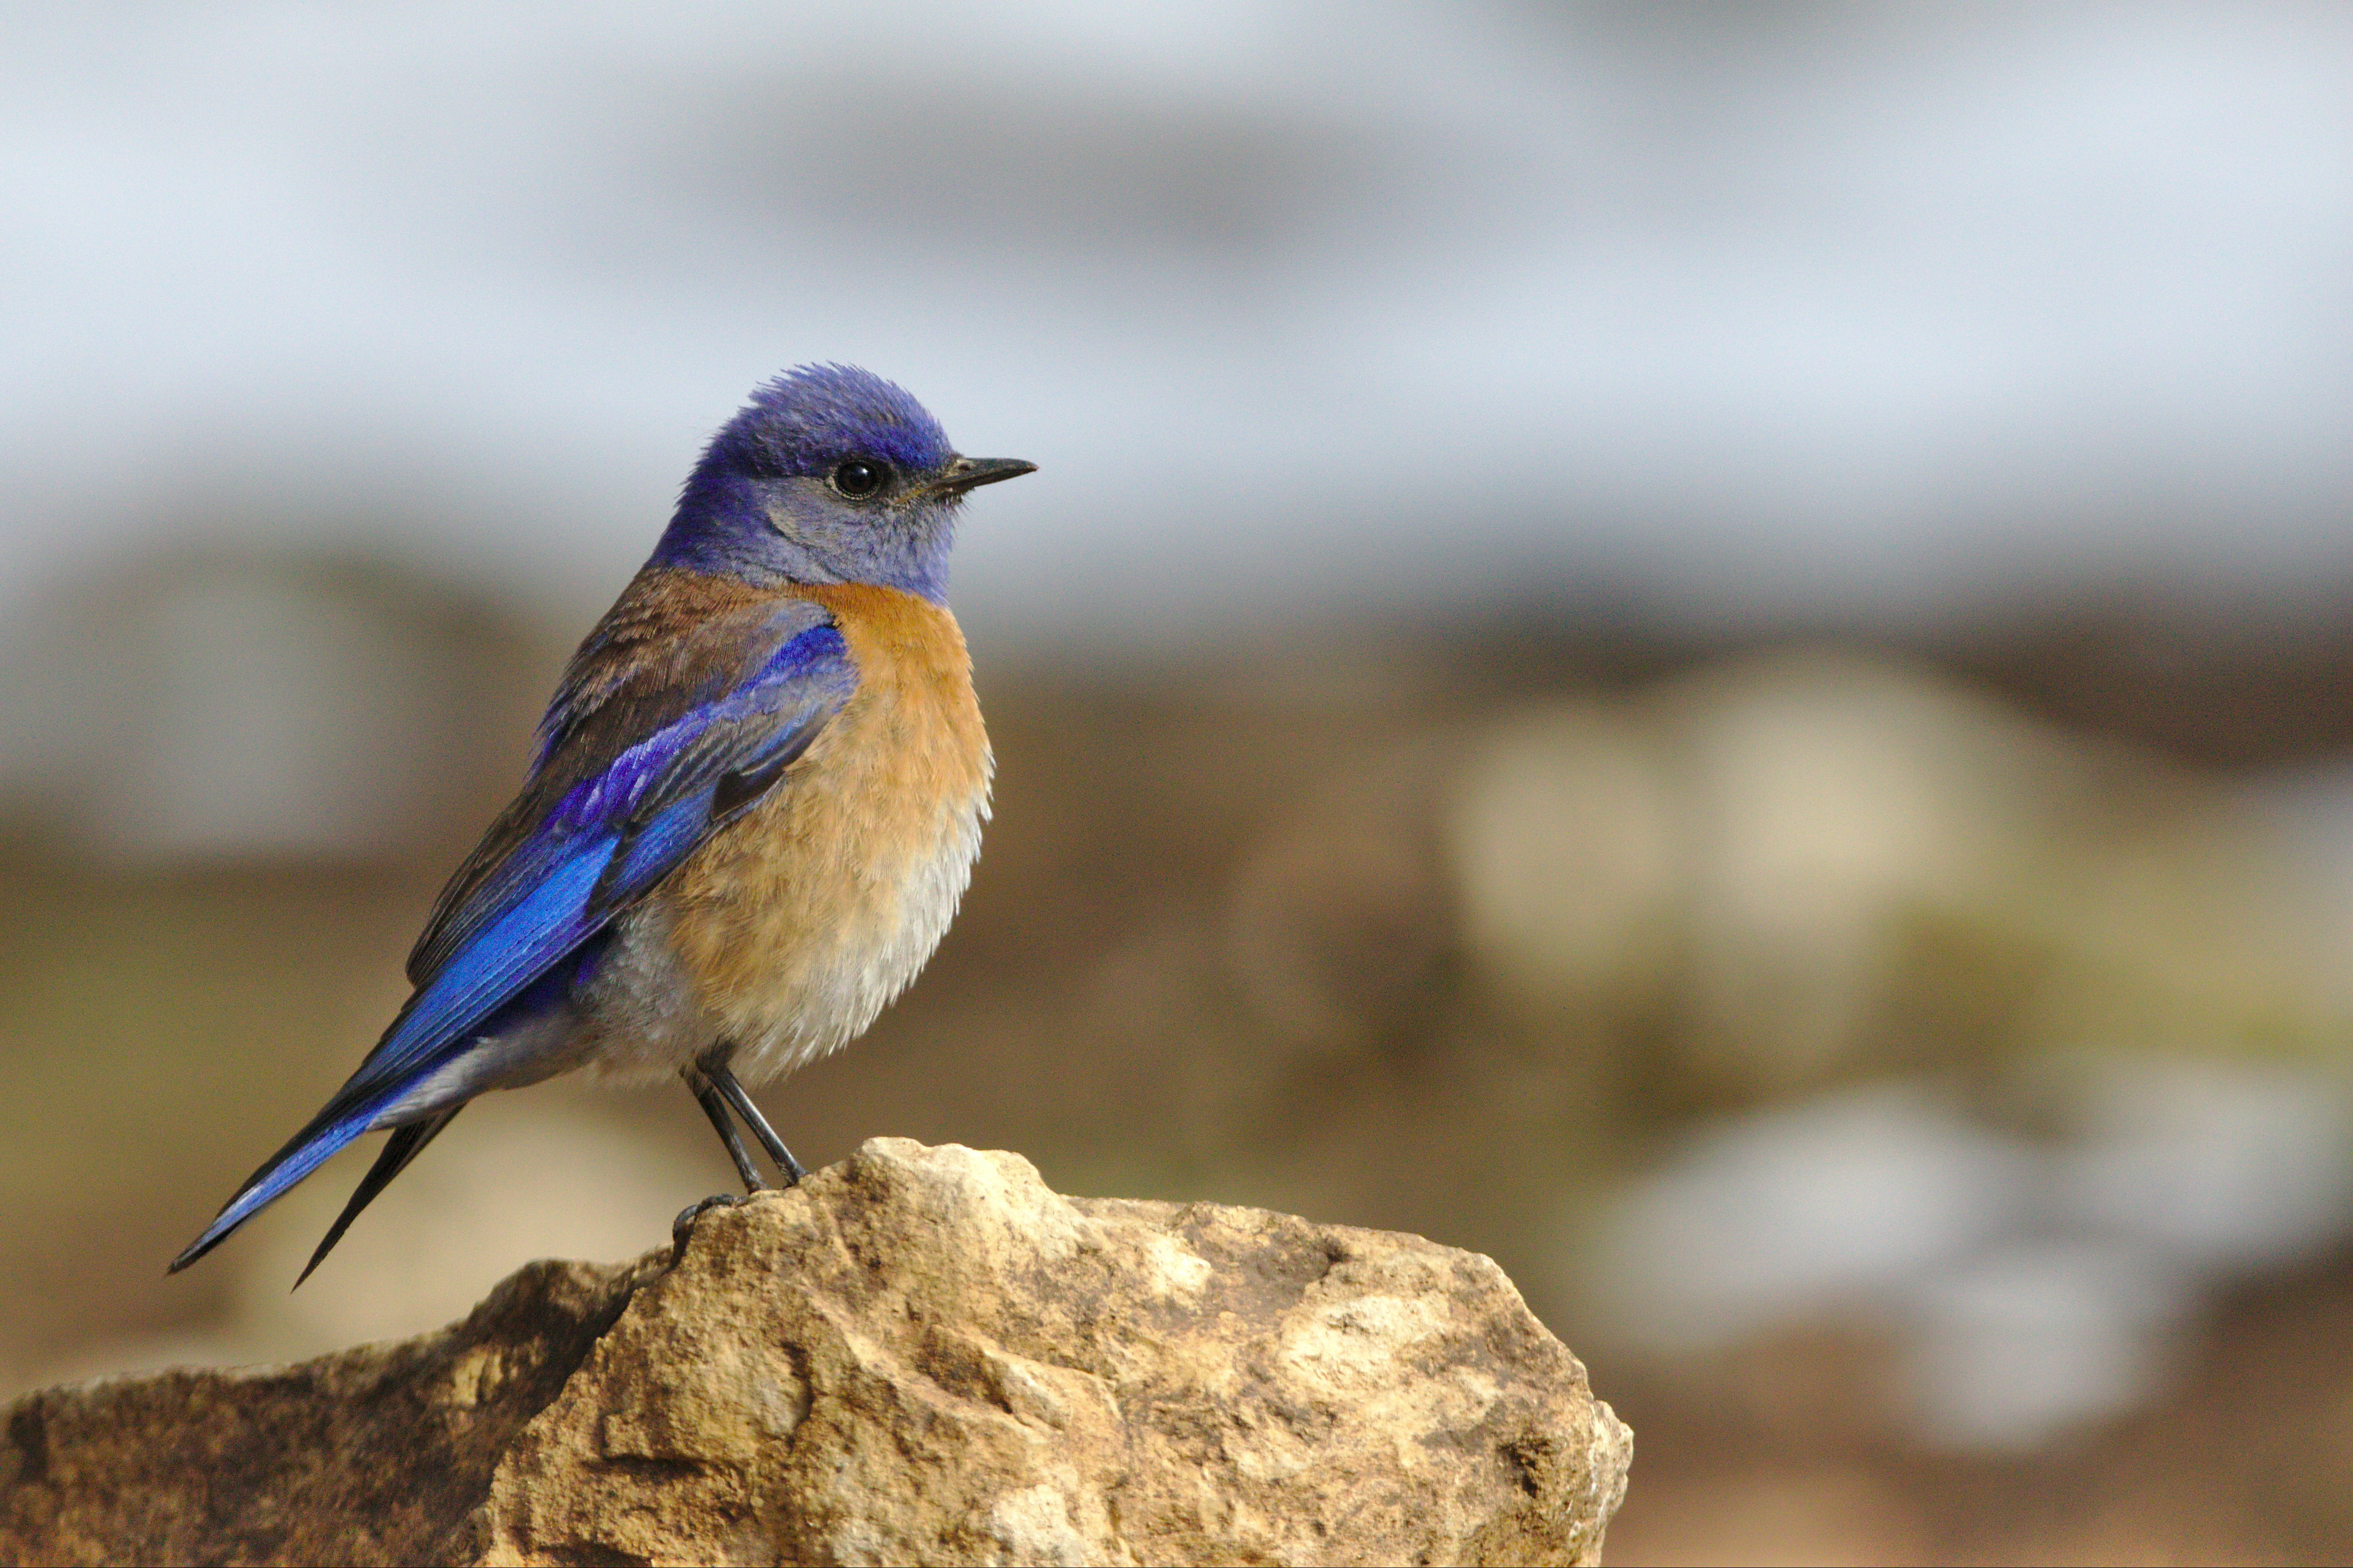 focused photo of blue and brown bird on the stone